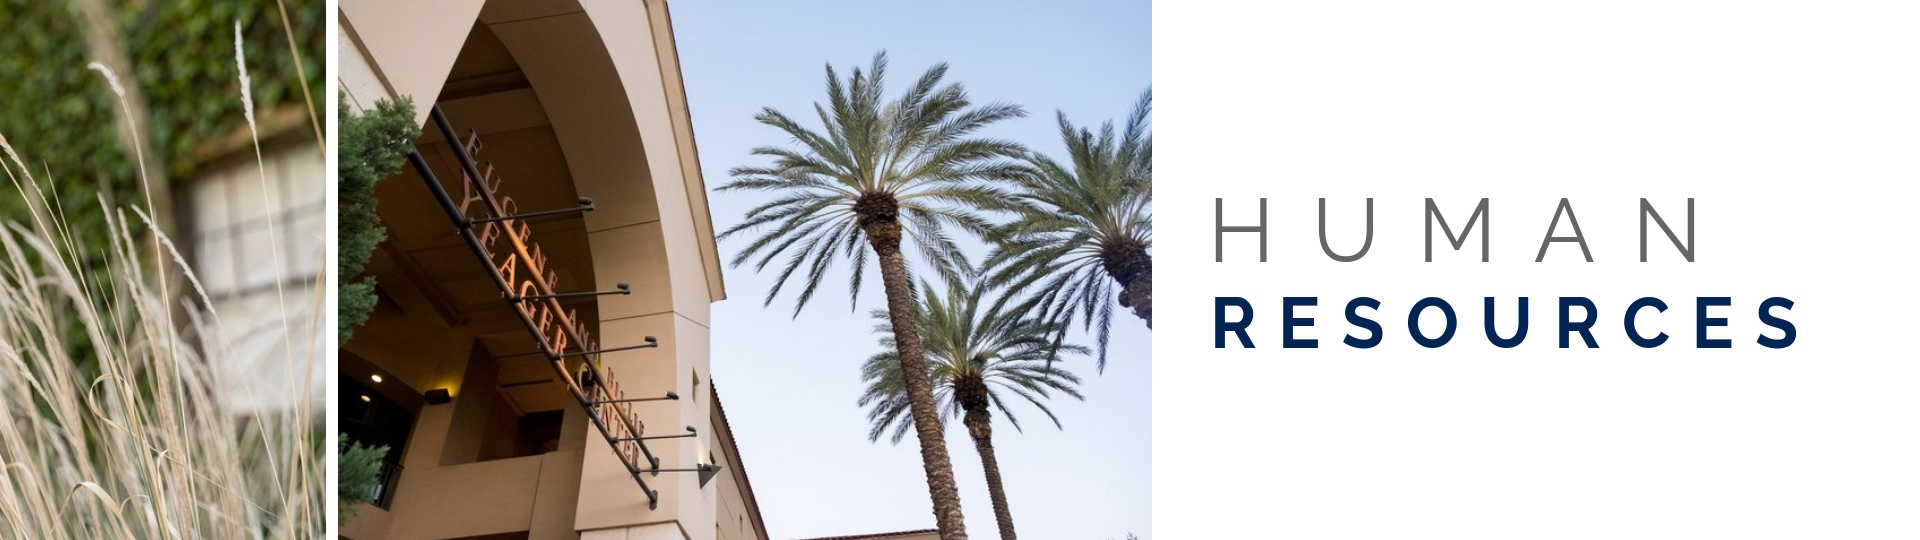 Human Resources :: California Baptist University